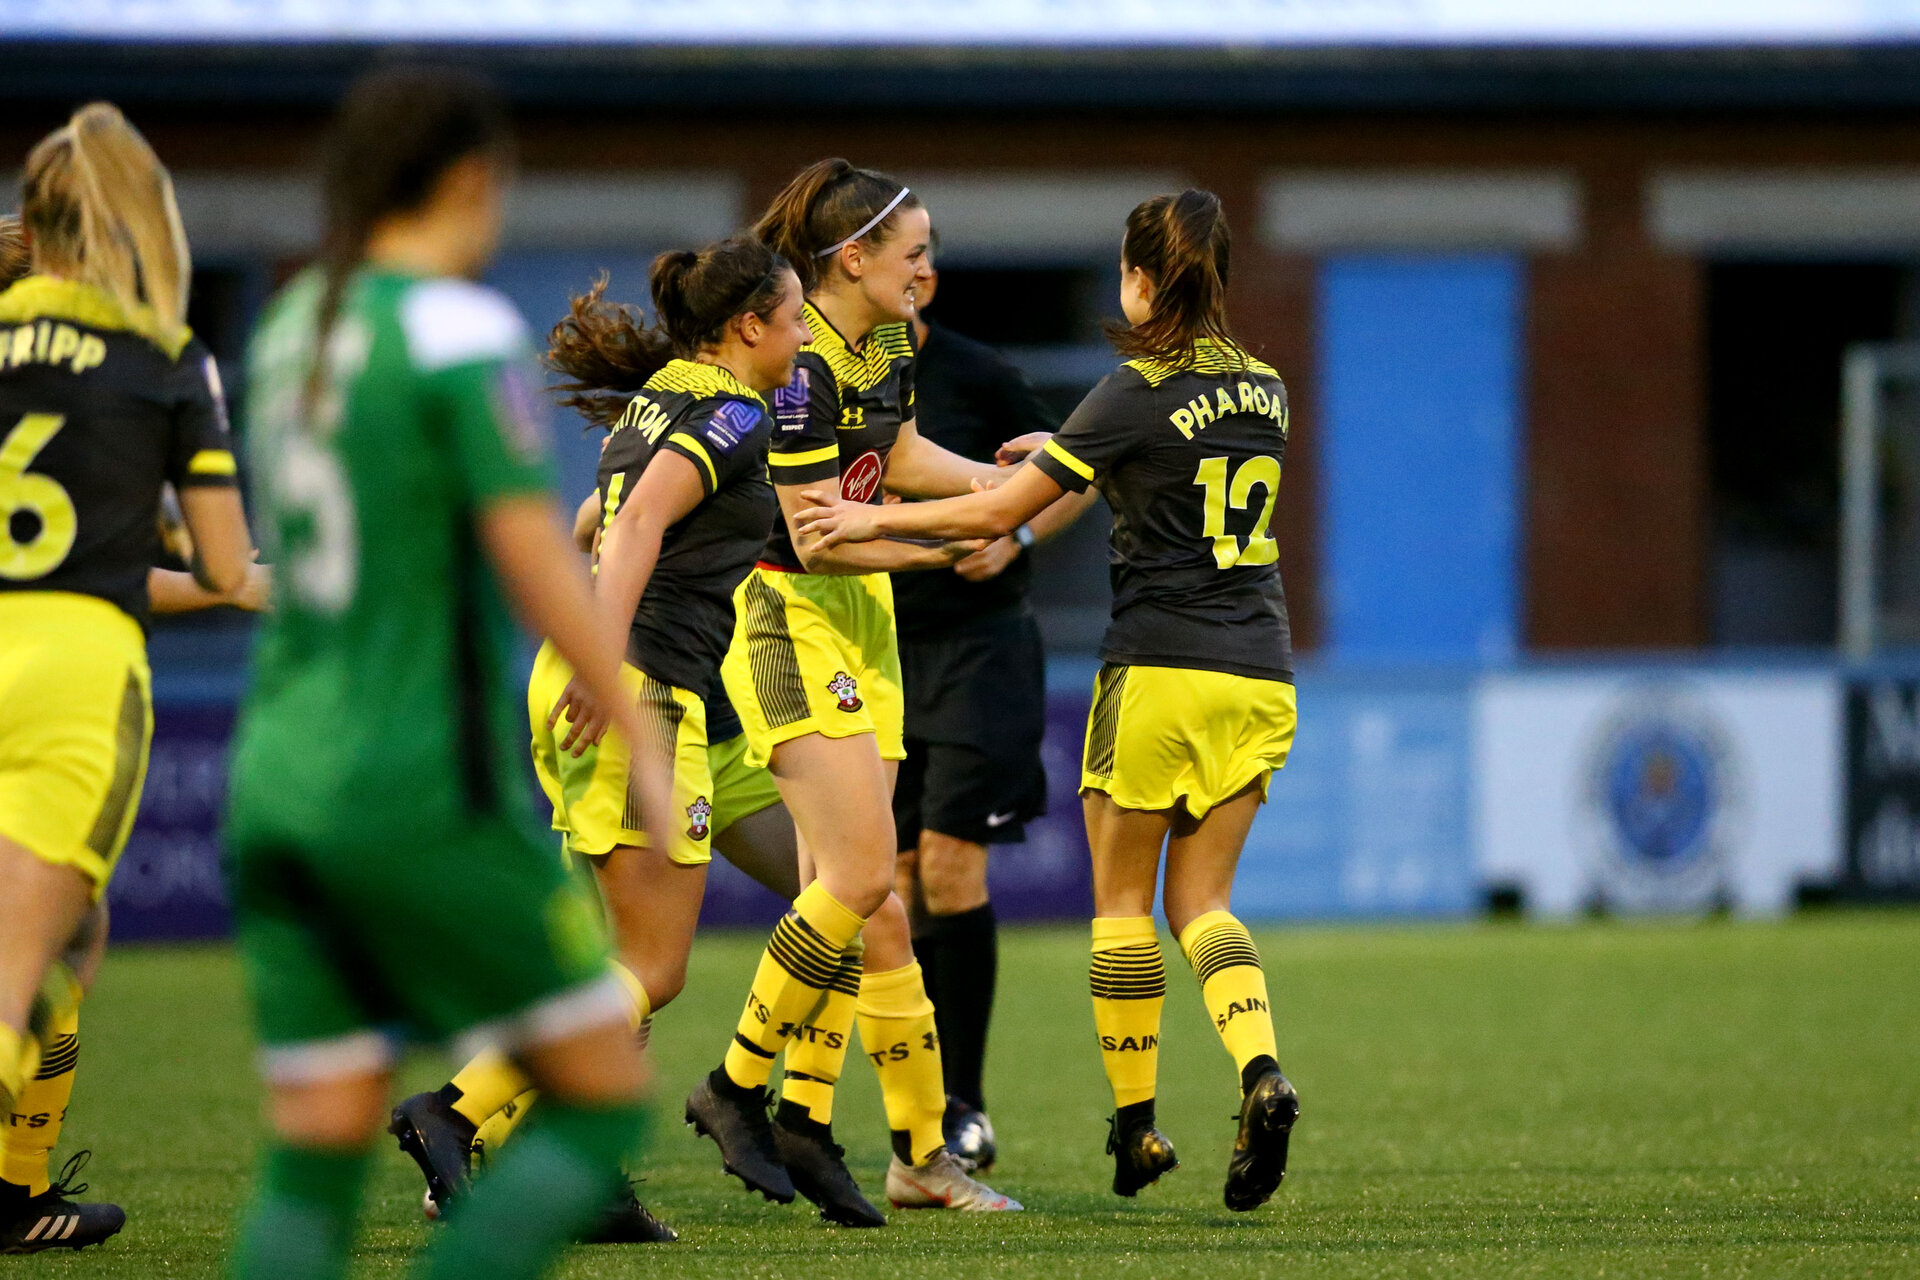 YEOVIL, ENGLAND - November 24: Ella Pusey goal celebrration during the SRWFL at The Avenue between Yeovil and Southampton Women on November 24 2019, Yeovil, England. (Photo by Isabelle Field/Southampton FC via Getty Images)